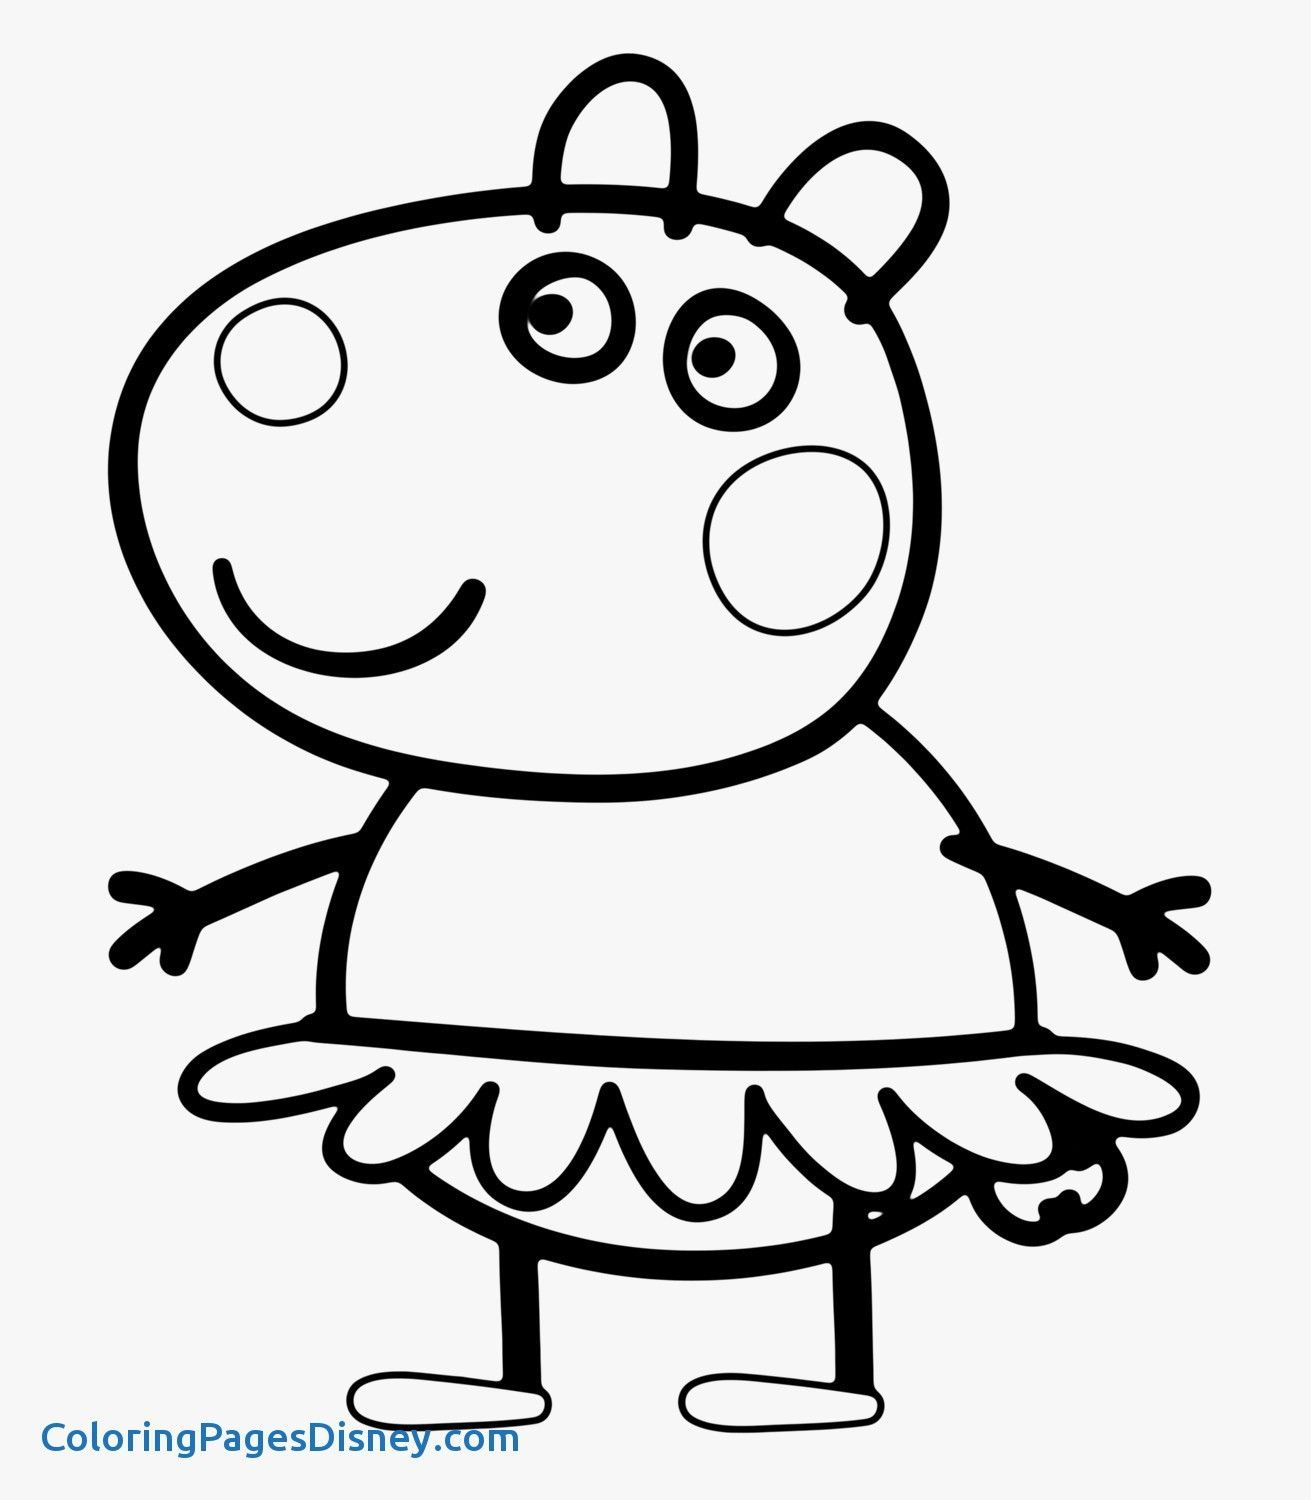 Peppa Pig And Suzy Sheep Coloring Pages Through The Thousand Photos On Line With Regards To Pe Peppa Pig Colouring Peppa Pig Coloring Pages Peppa Pig Drawing